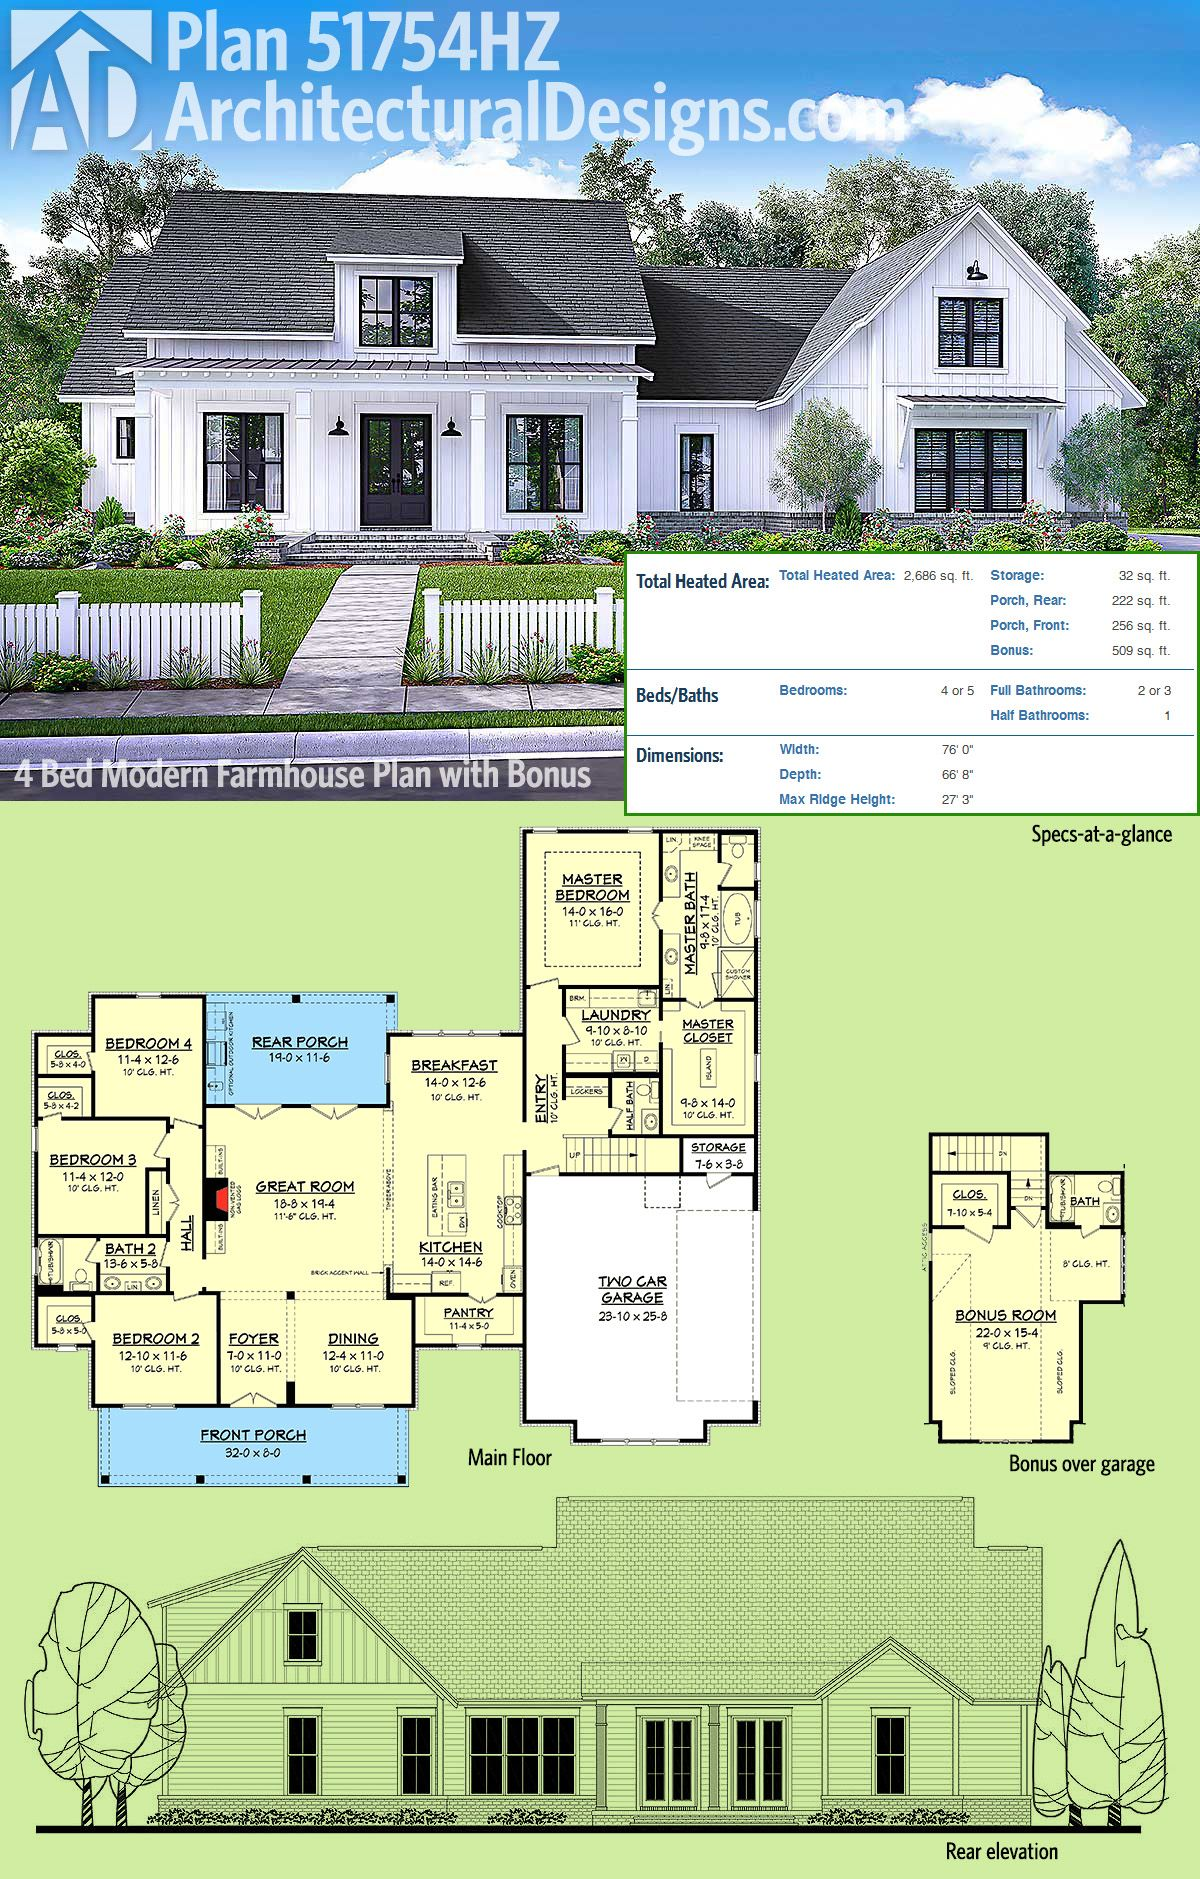 Architectural Designs Modern Farmhouse Plan 51754HZ gives you over     Architectural Designs Modern Farmhouse Plan 51754HZ gives you over 2 600  square feet of living space plus a bonus room over the garage giving you a  great